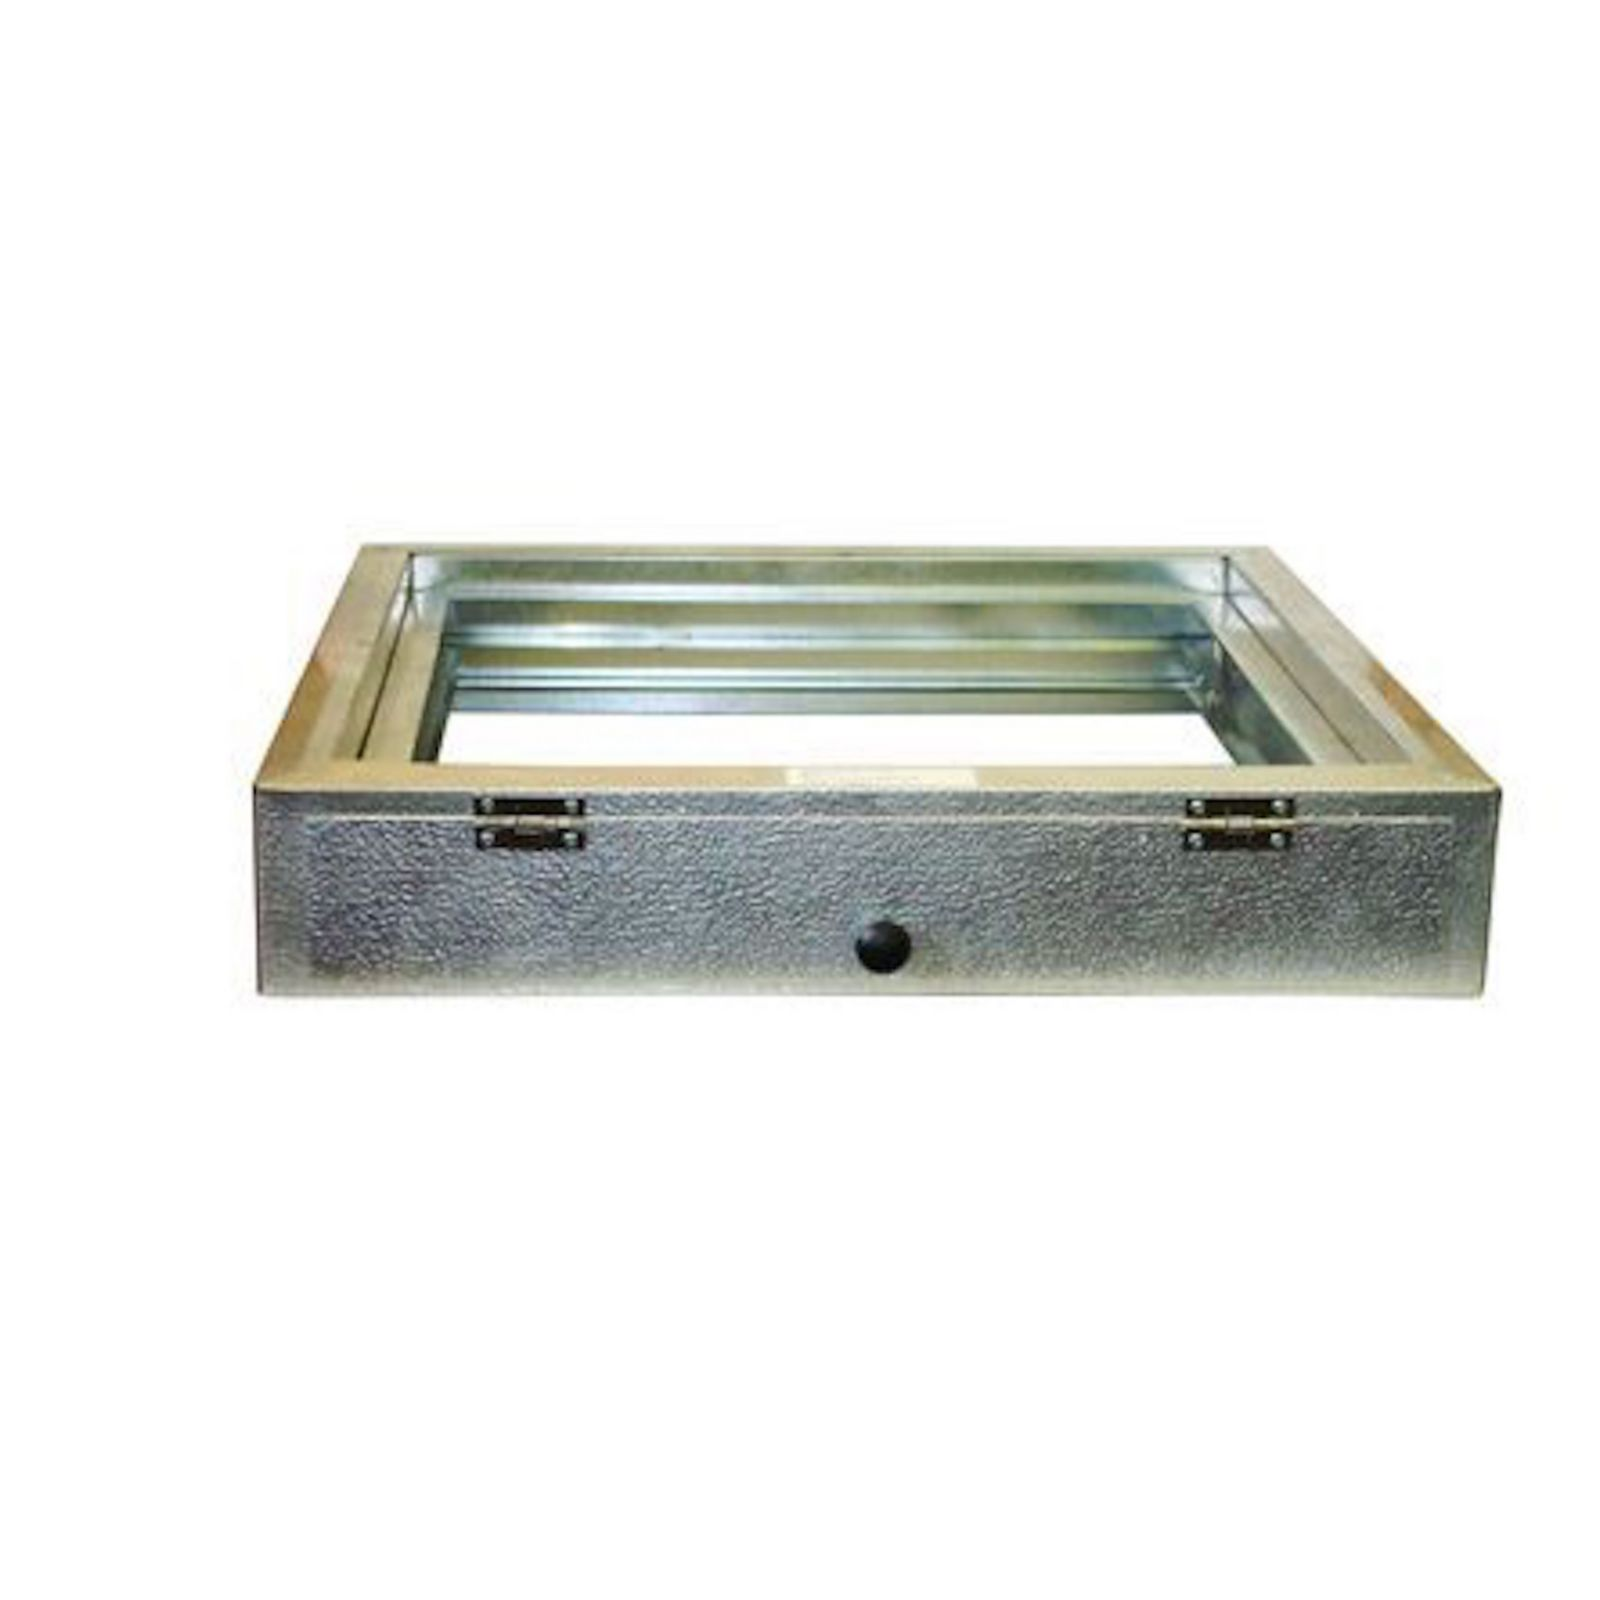 "The Metal Shop 433-241 - 2"" Filter Housing 19.5"" X 22"" For 18"" X 20"" Filter"